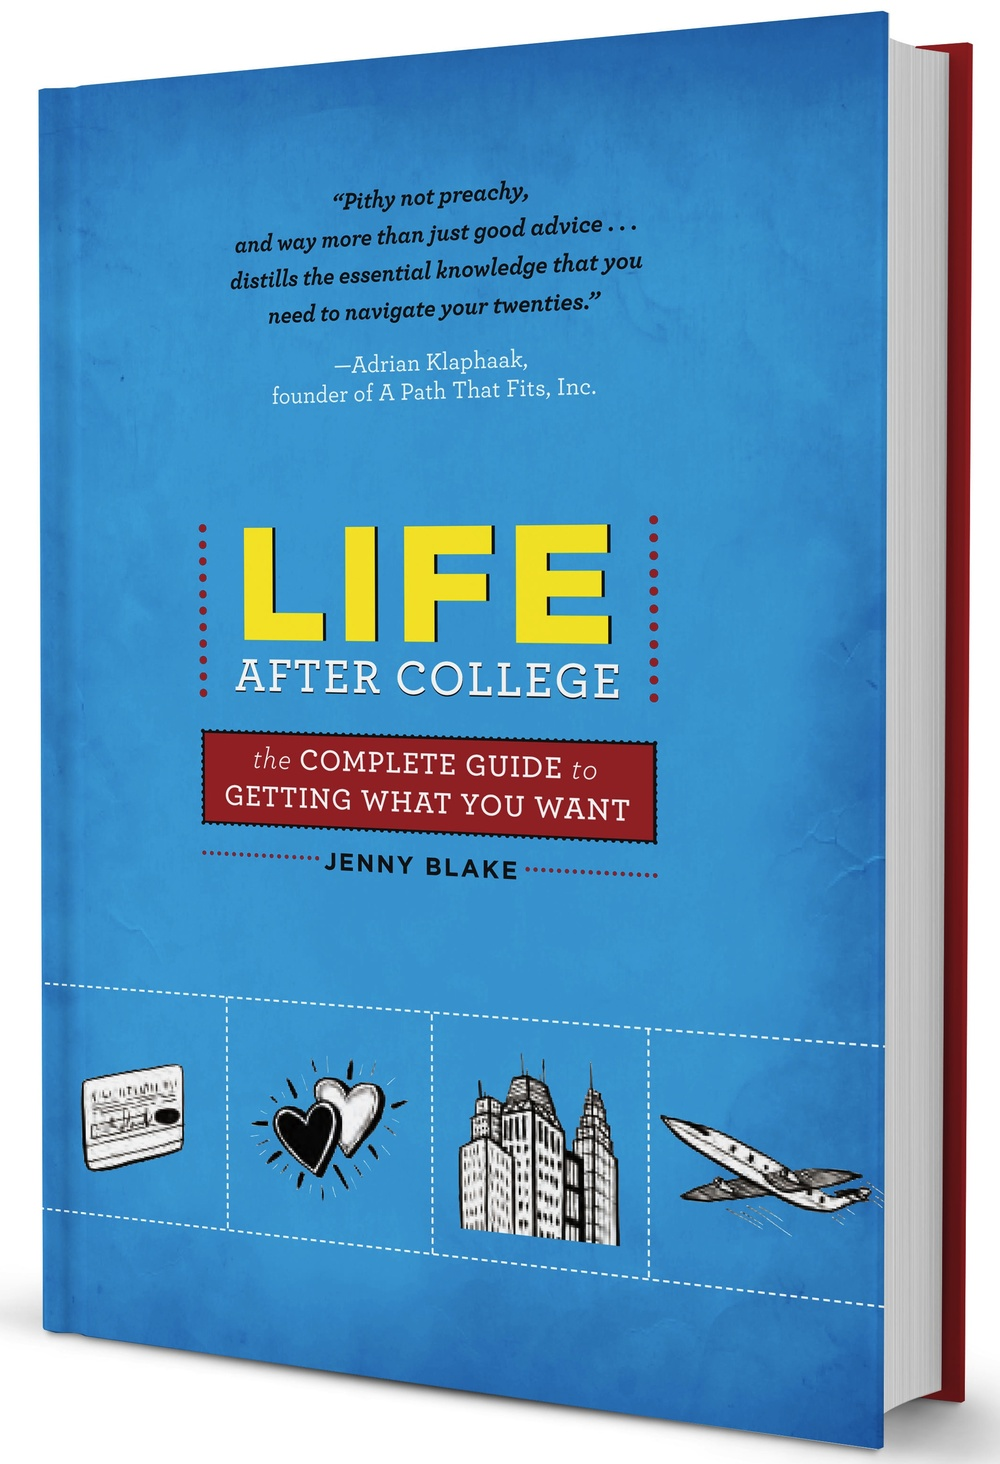 Click to visit the Life After College blog at LifeAfterCollege.org.